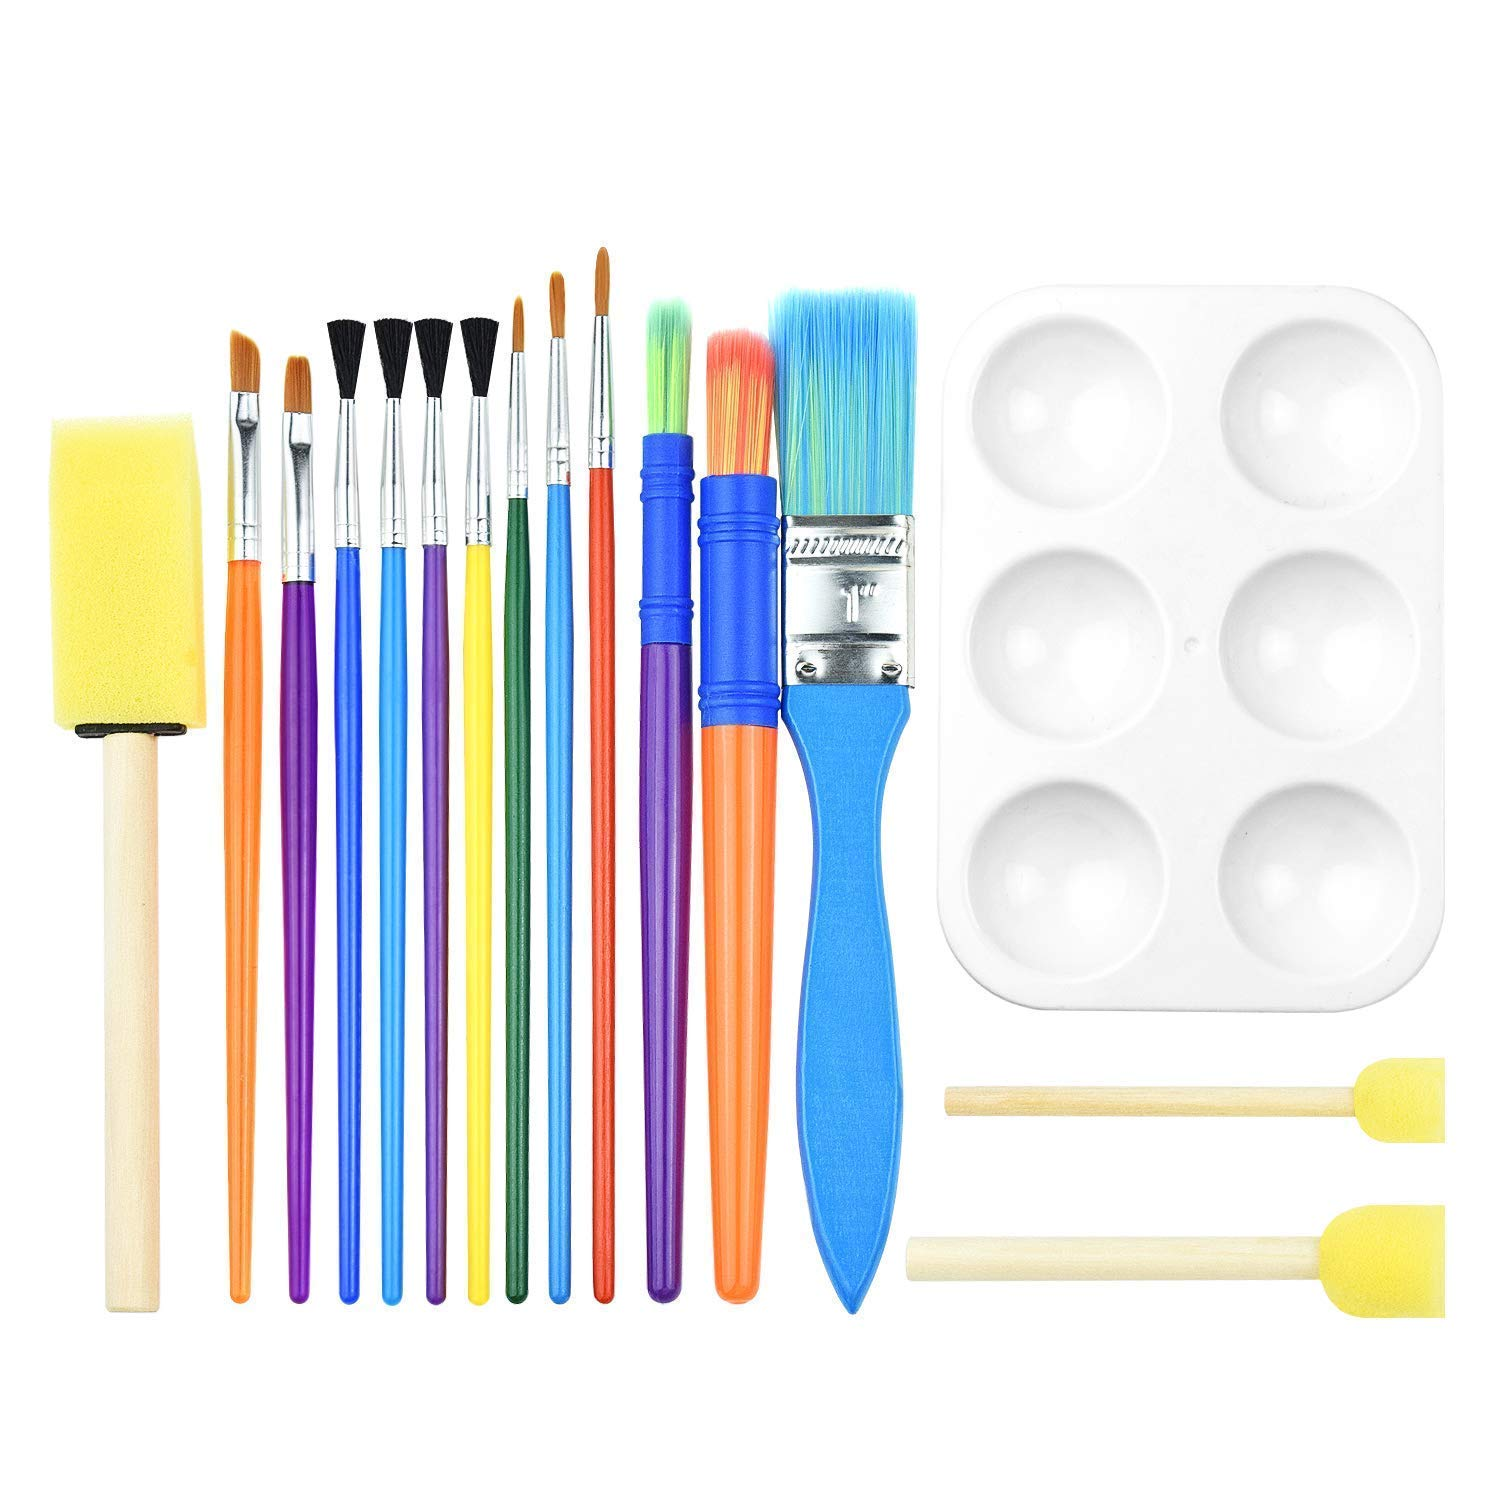 Paintbrush Sets,Paint Brush Kids Painting Set Oil Acrylic Watercolor Painting School Art Supplies Palette Watercolor Brush Acrylic Paint Brushes for Artists Painters Beginners Students Kids